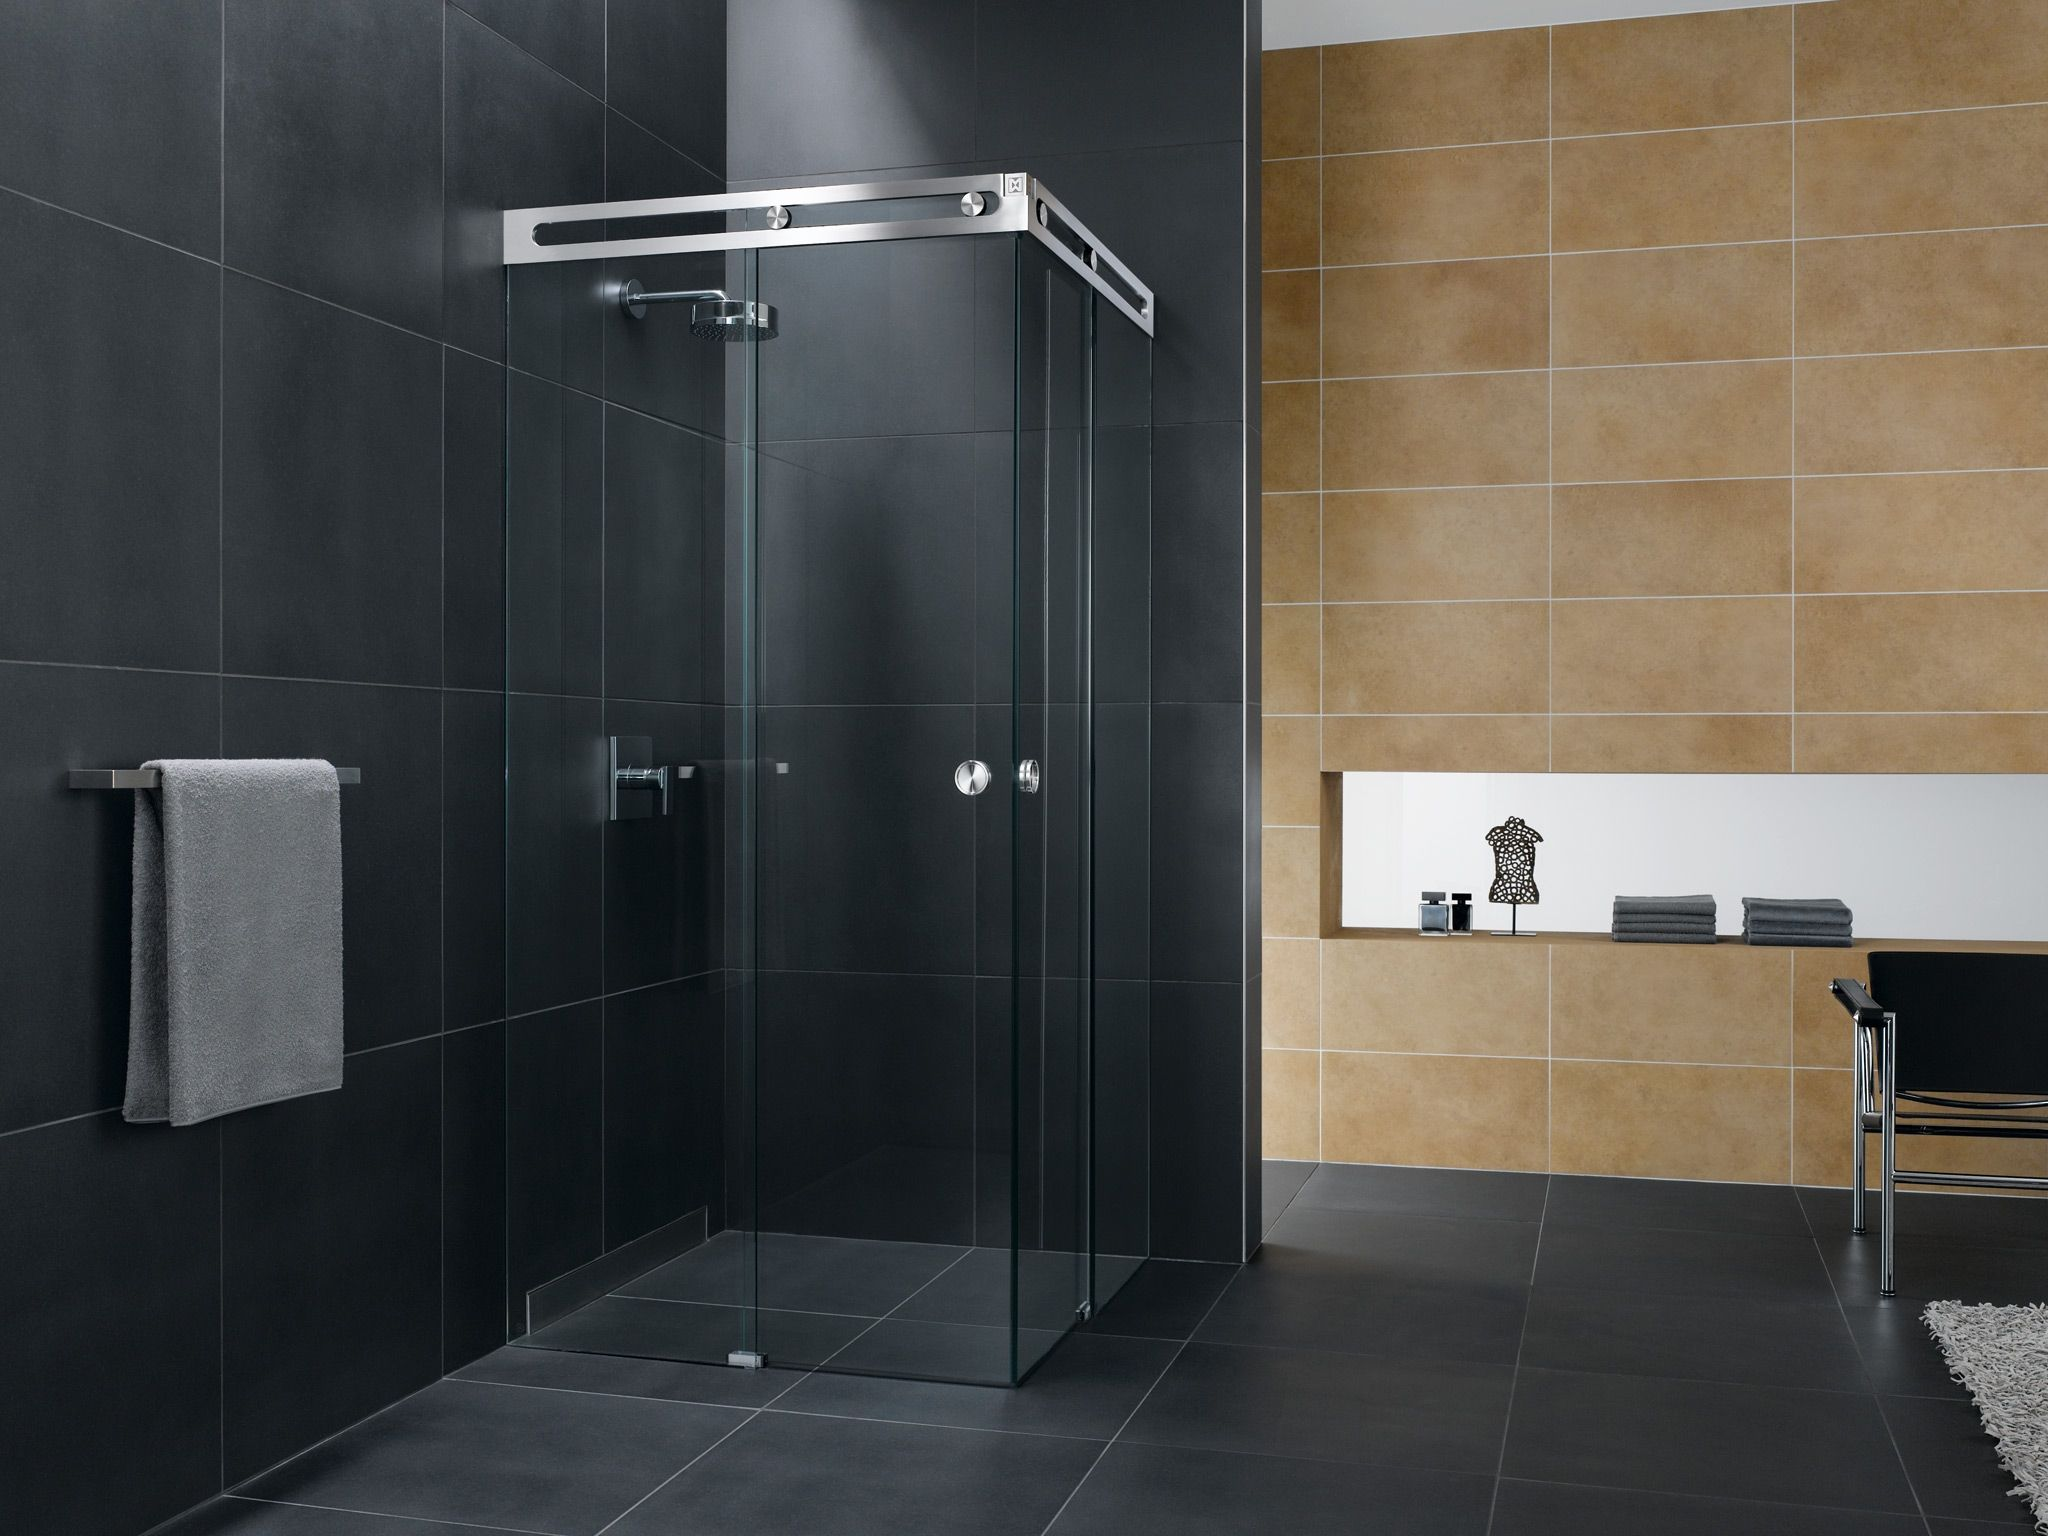 Crl Frameless Shower Door Hardware Template Guide | http ...